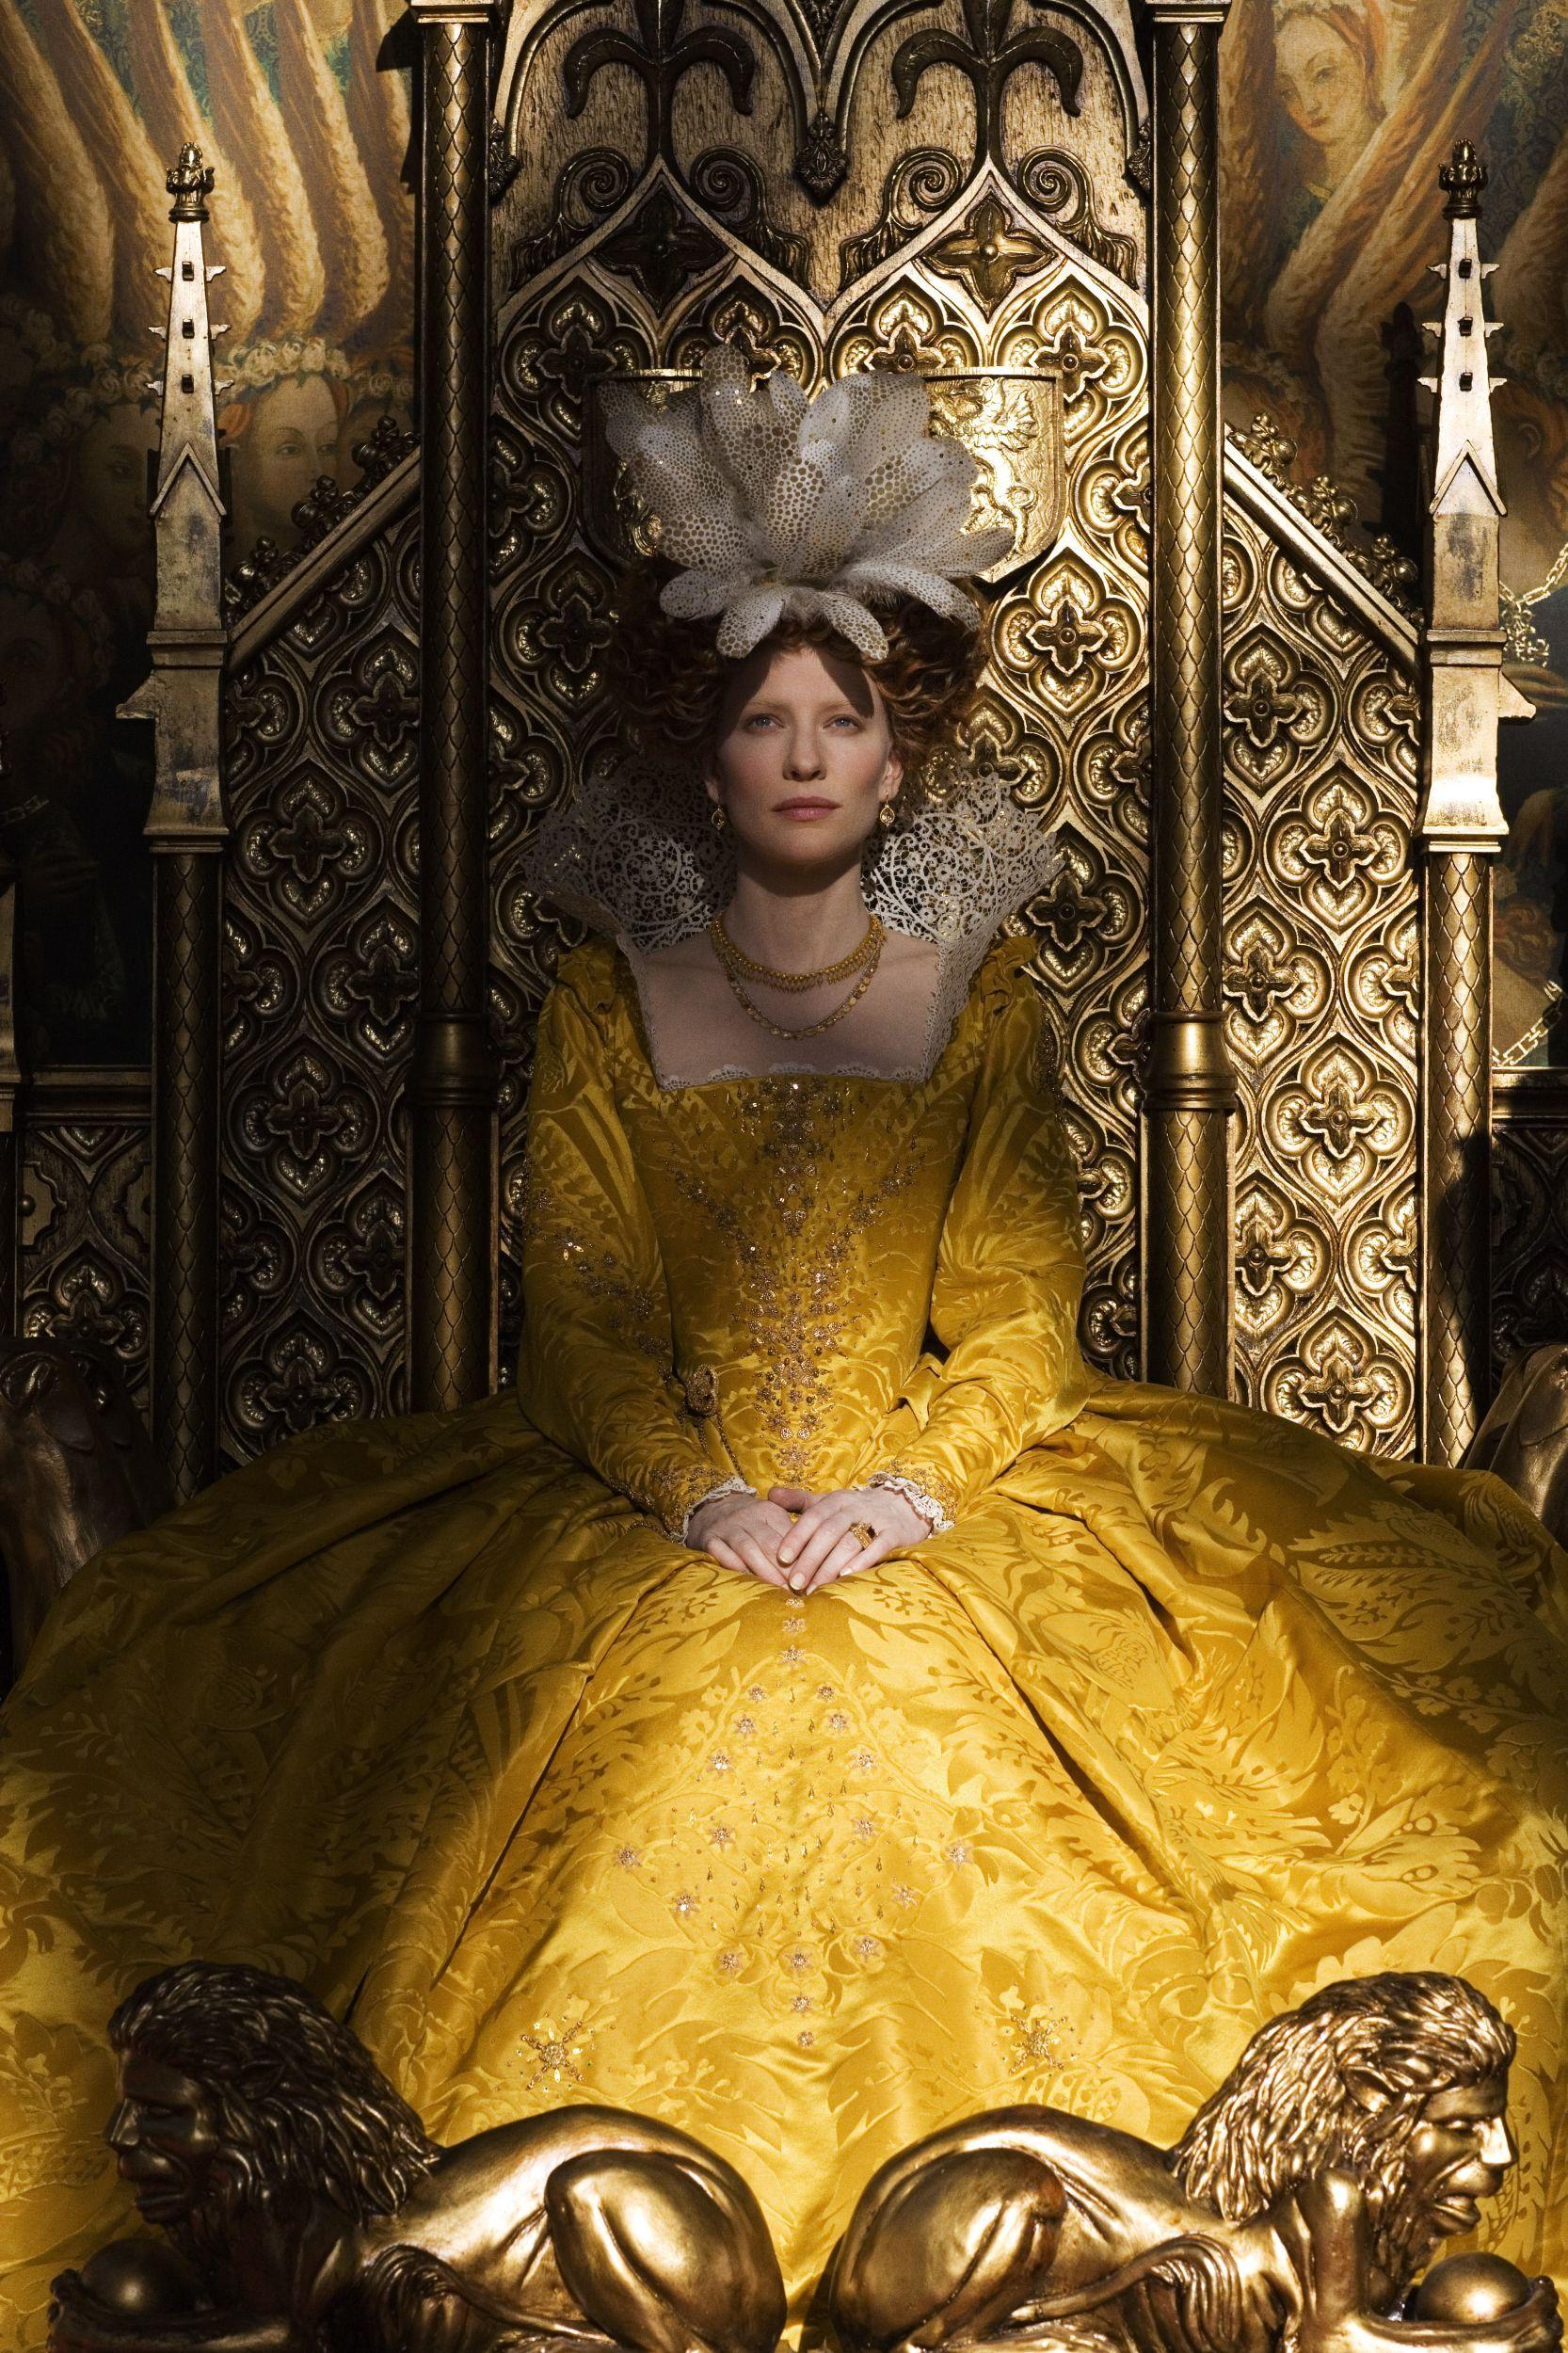 Cate Blanchett as Queen Elizabeth I The Golden Age